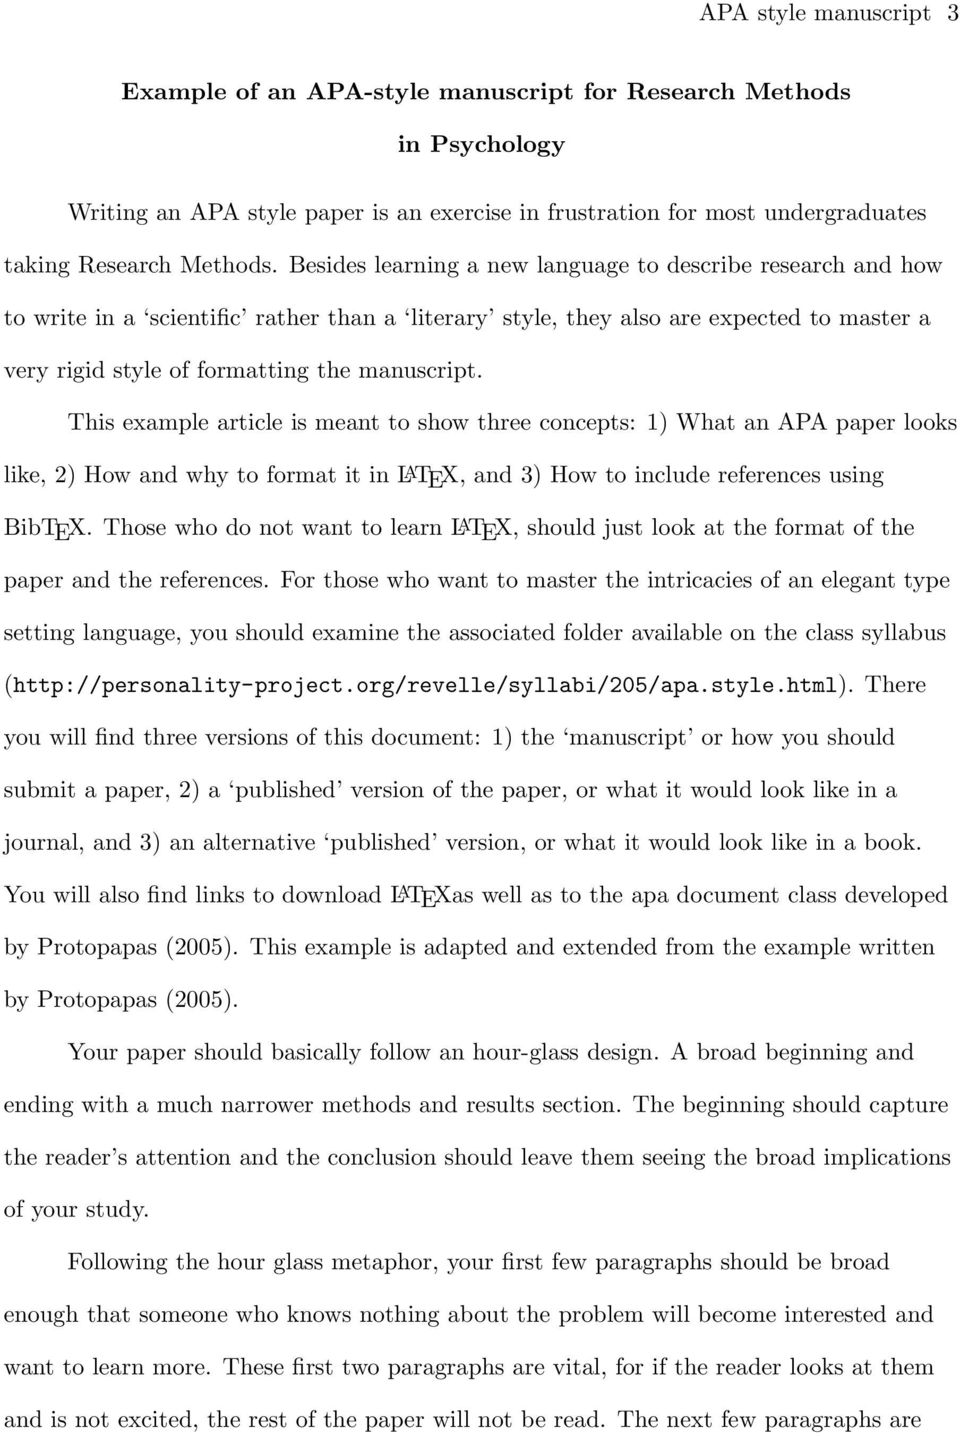 005 Page 3 Apa Style Research Paper Methods Archaicawful Section Full